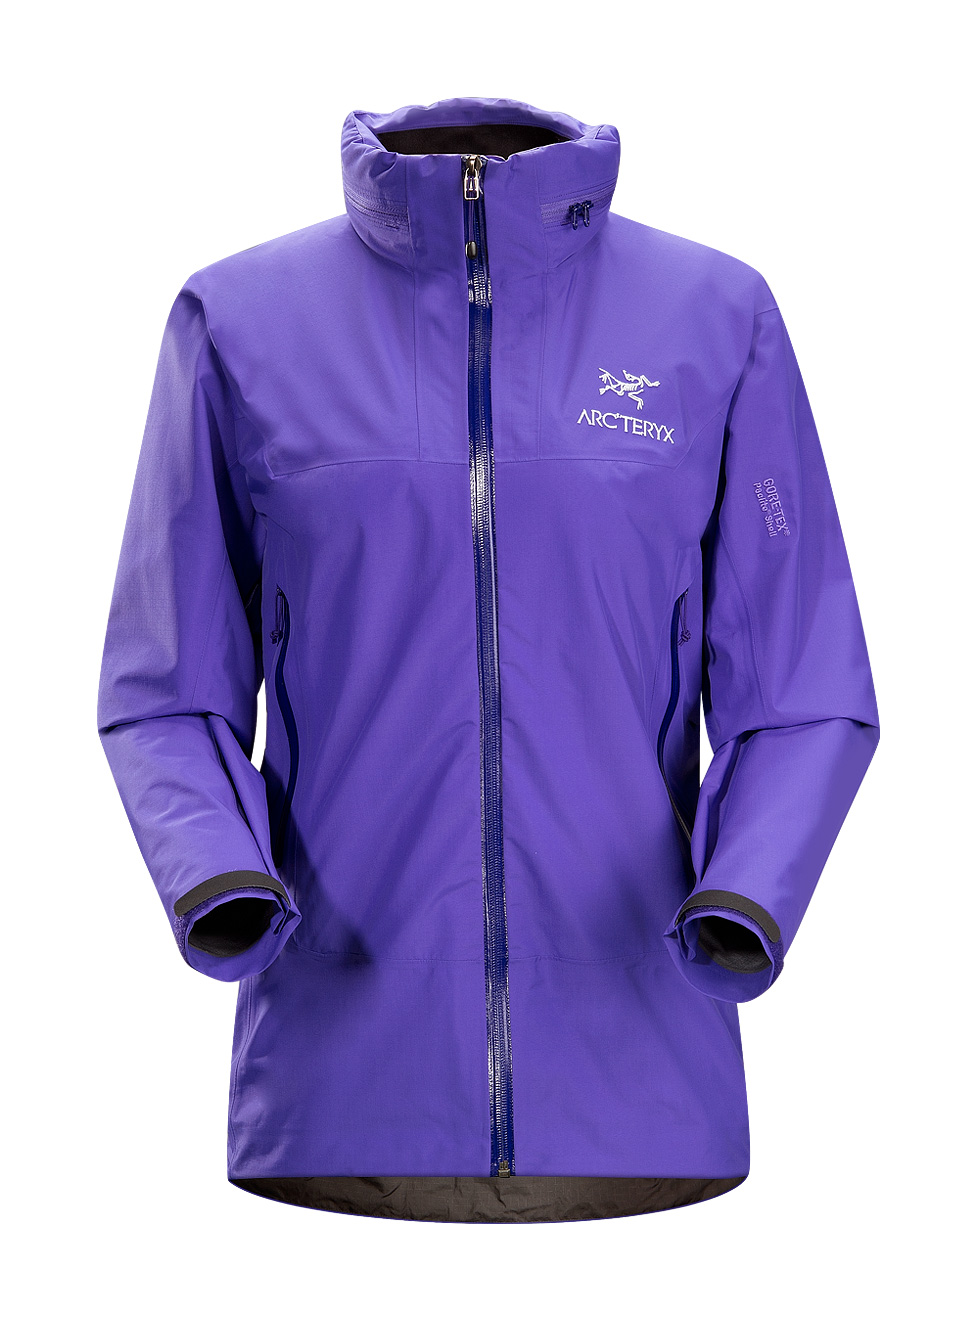 Arcteryx Jackets Women Larkspar Theta SL Hybrid Jacket - New